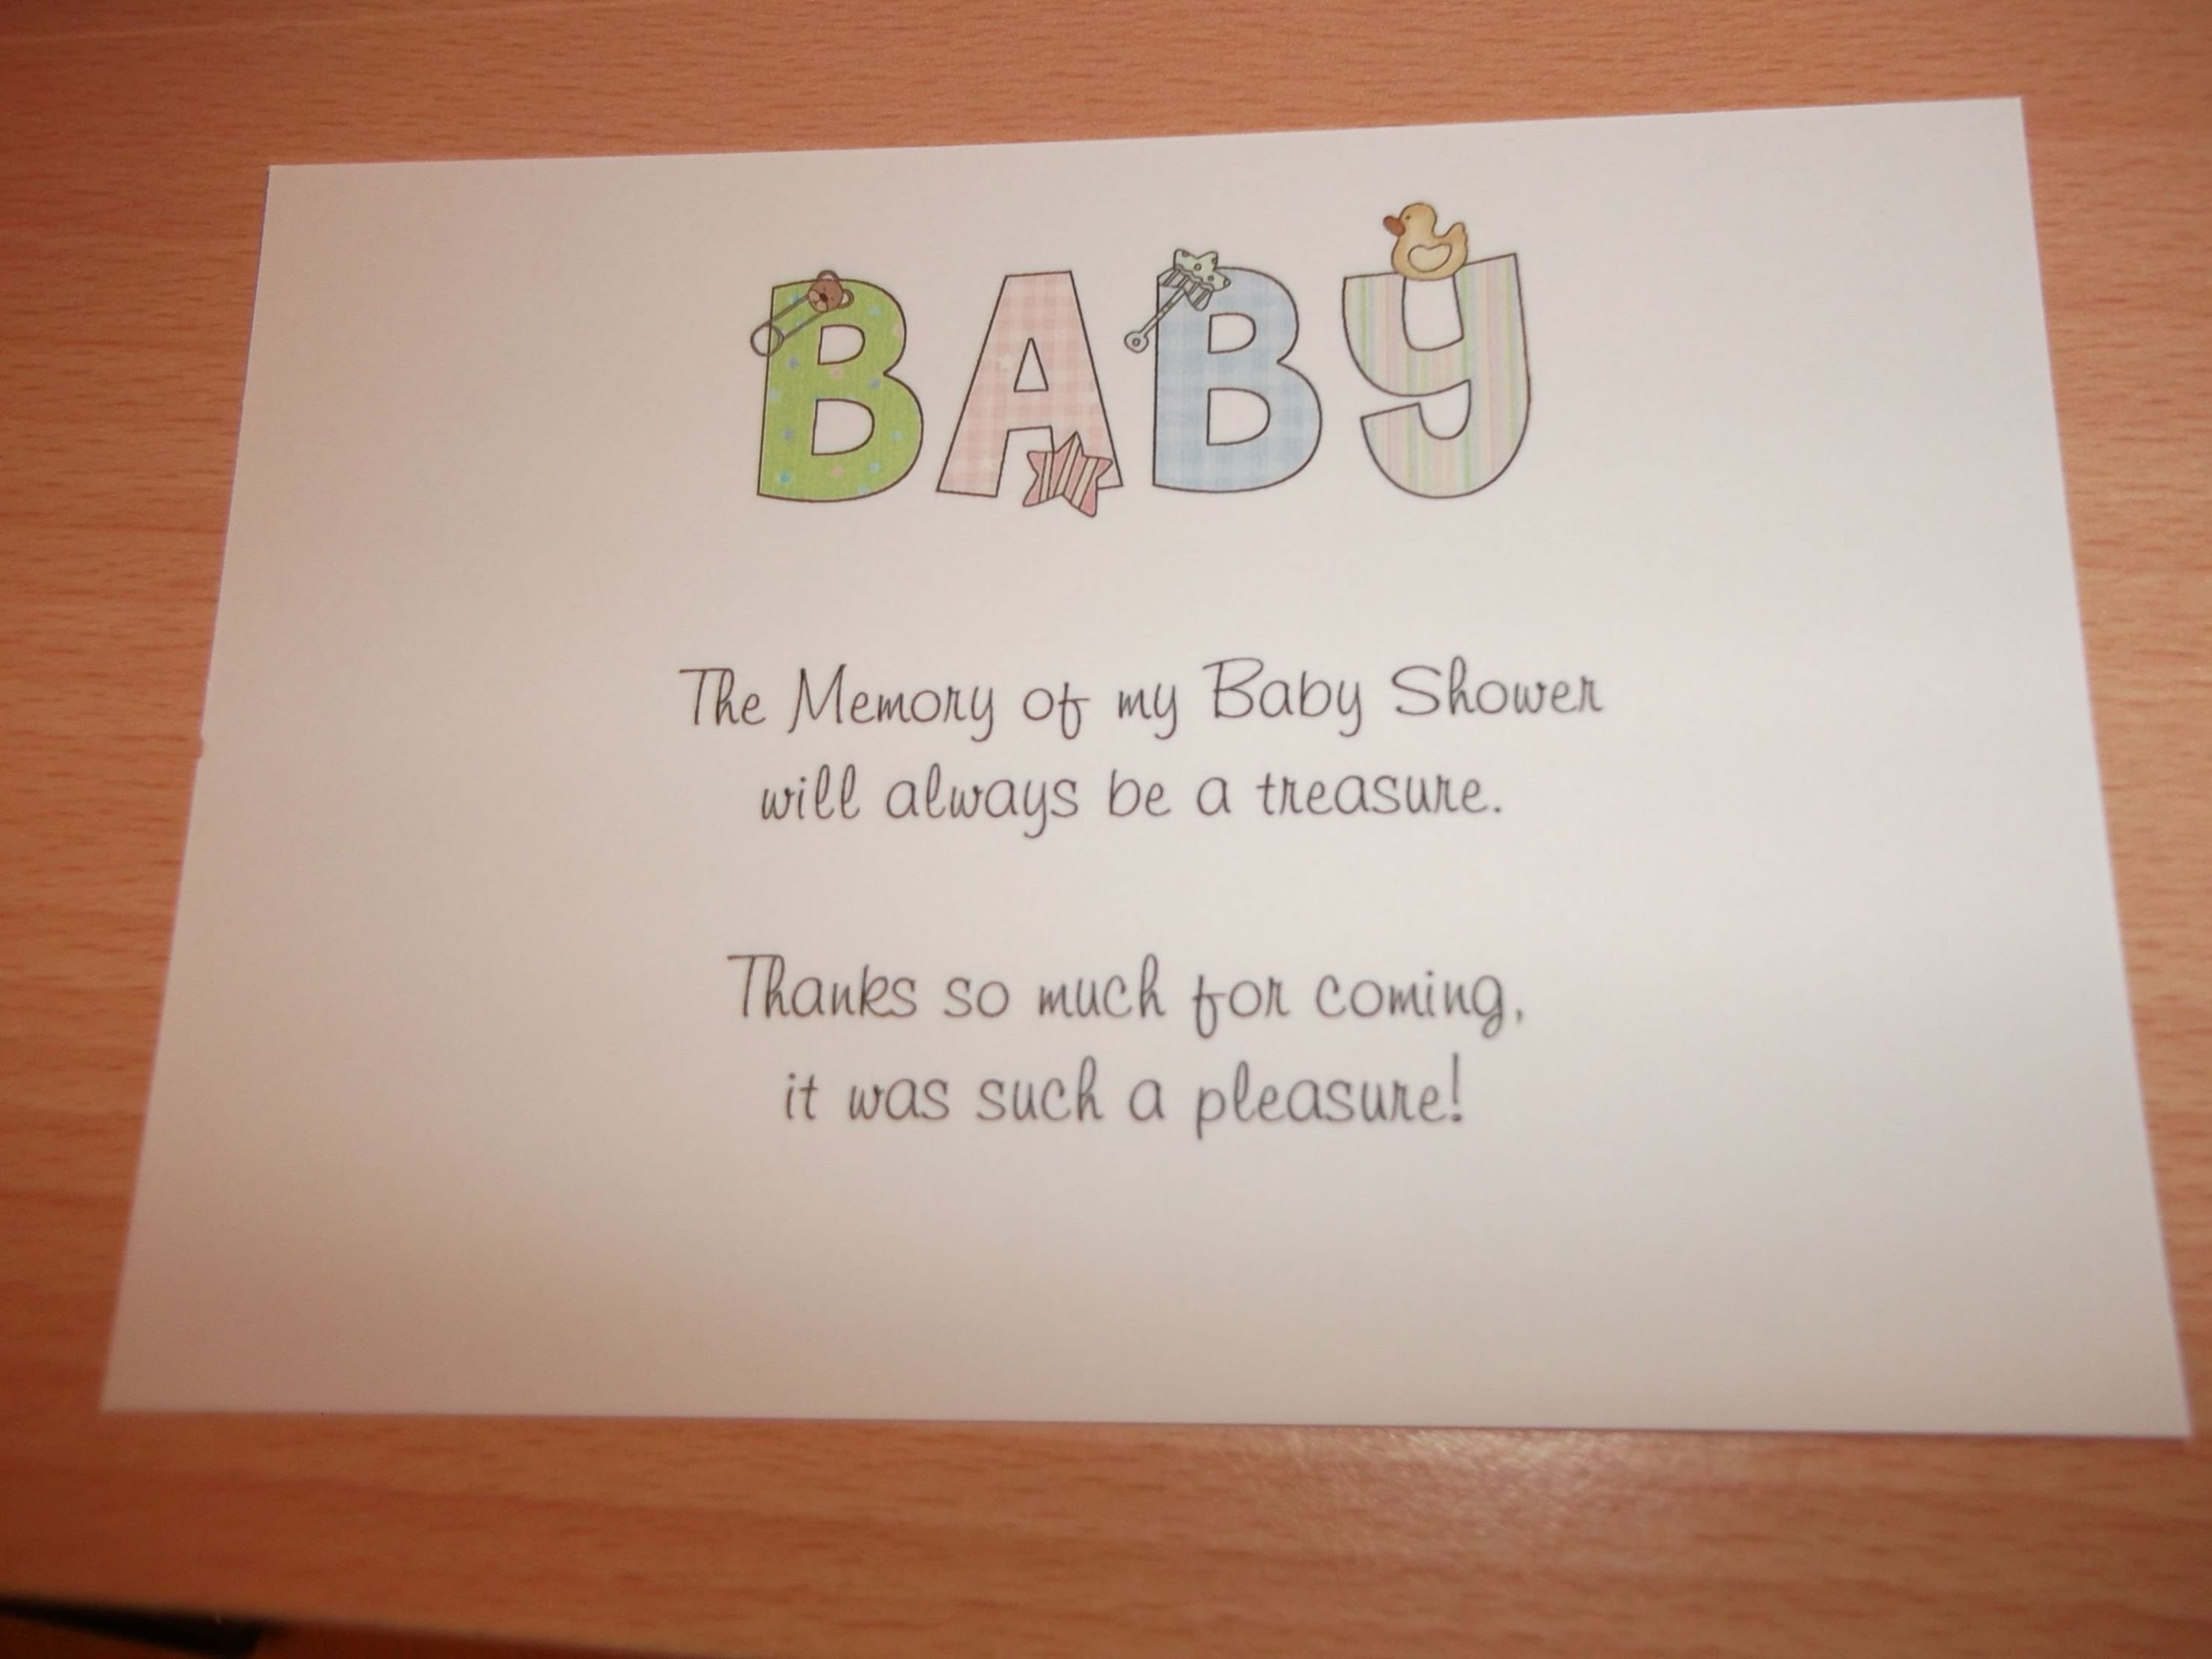 10 Fashionable Thank You Card Message Ideas terrific new baby card message design featuring thank you messages